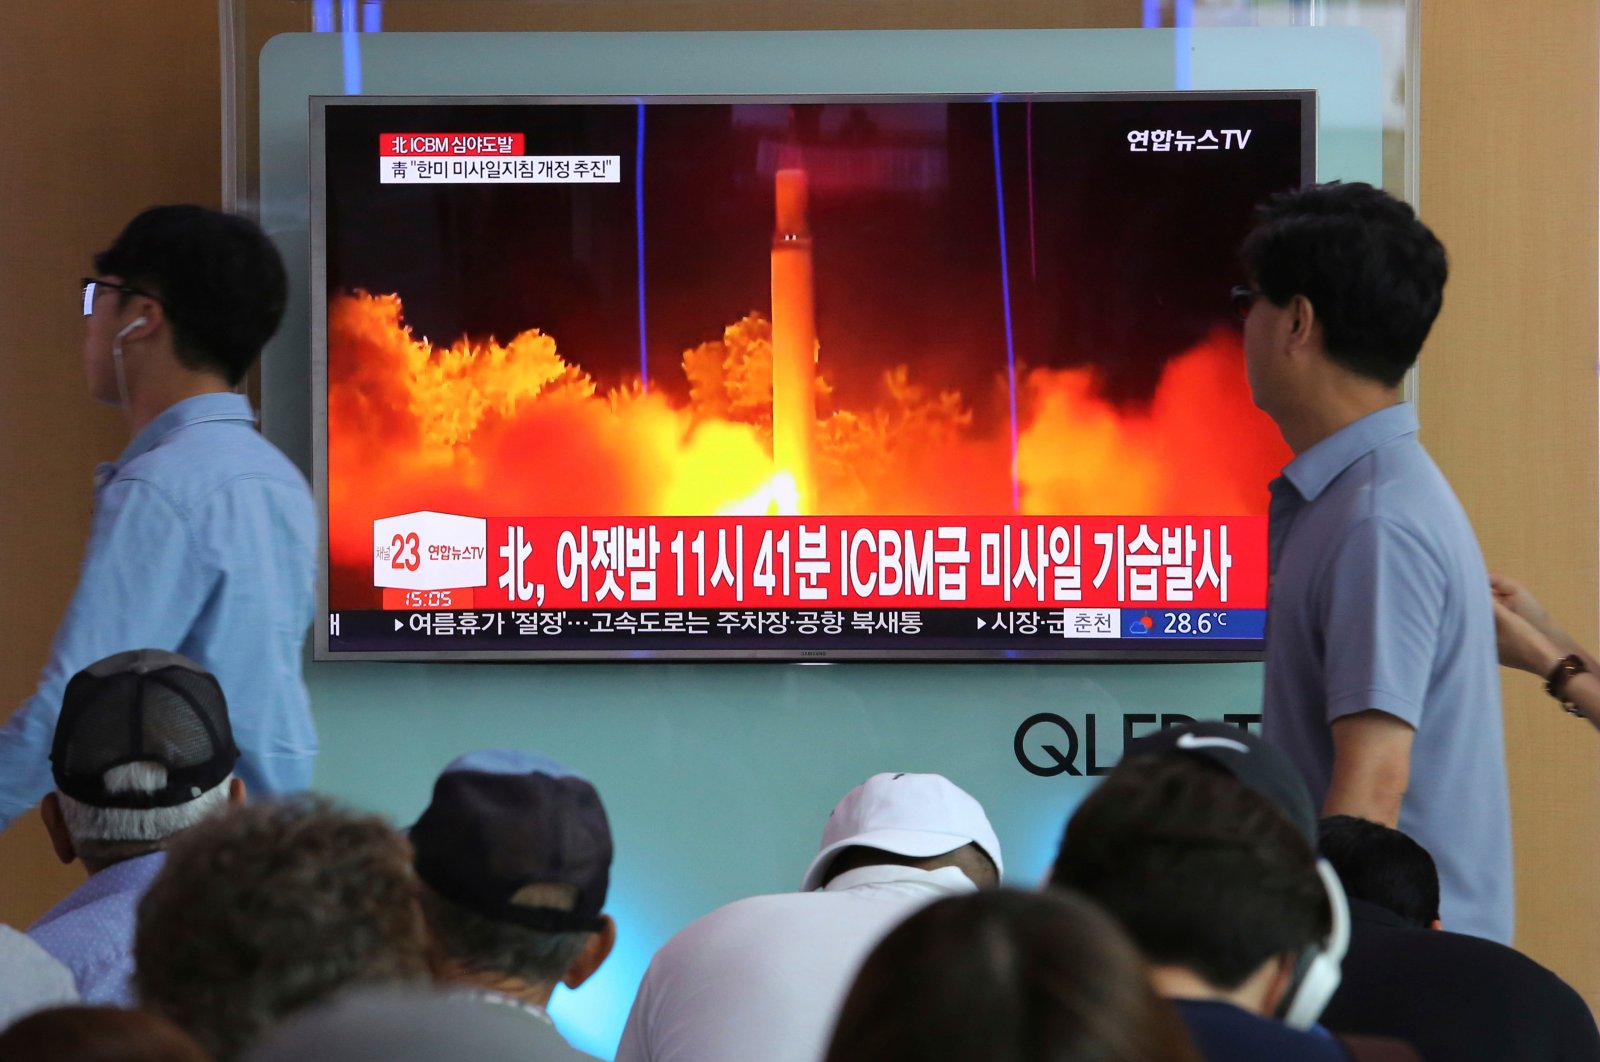 People watch a TV news program showing an image of North Korea's latest test launch of an intercontinental ballistic missile (ICBM), at the Seoul Railway Station in Seoul, South Korea, July 29, 2017. (AP Photo)